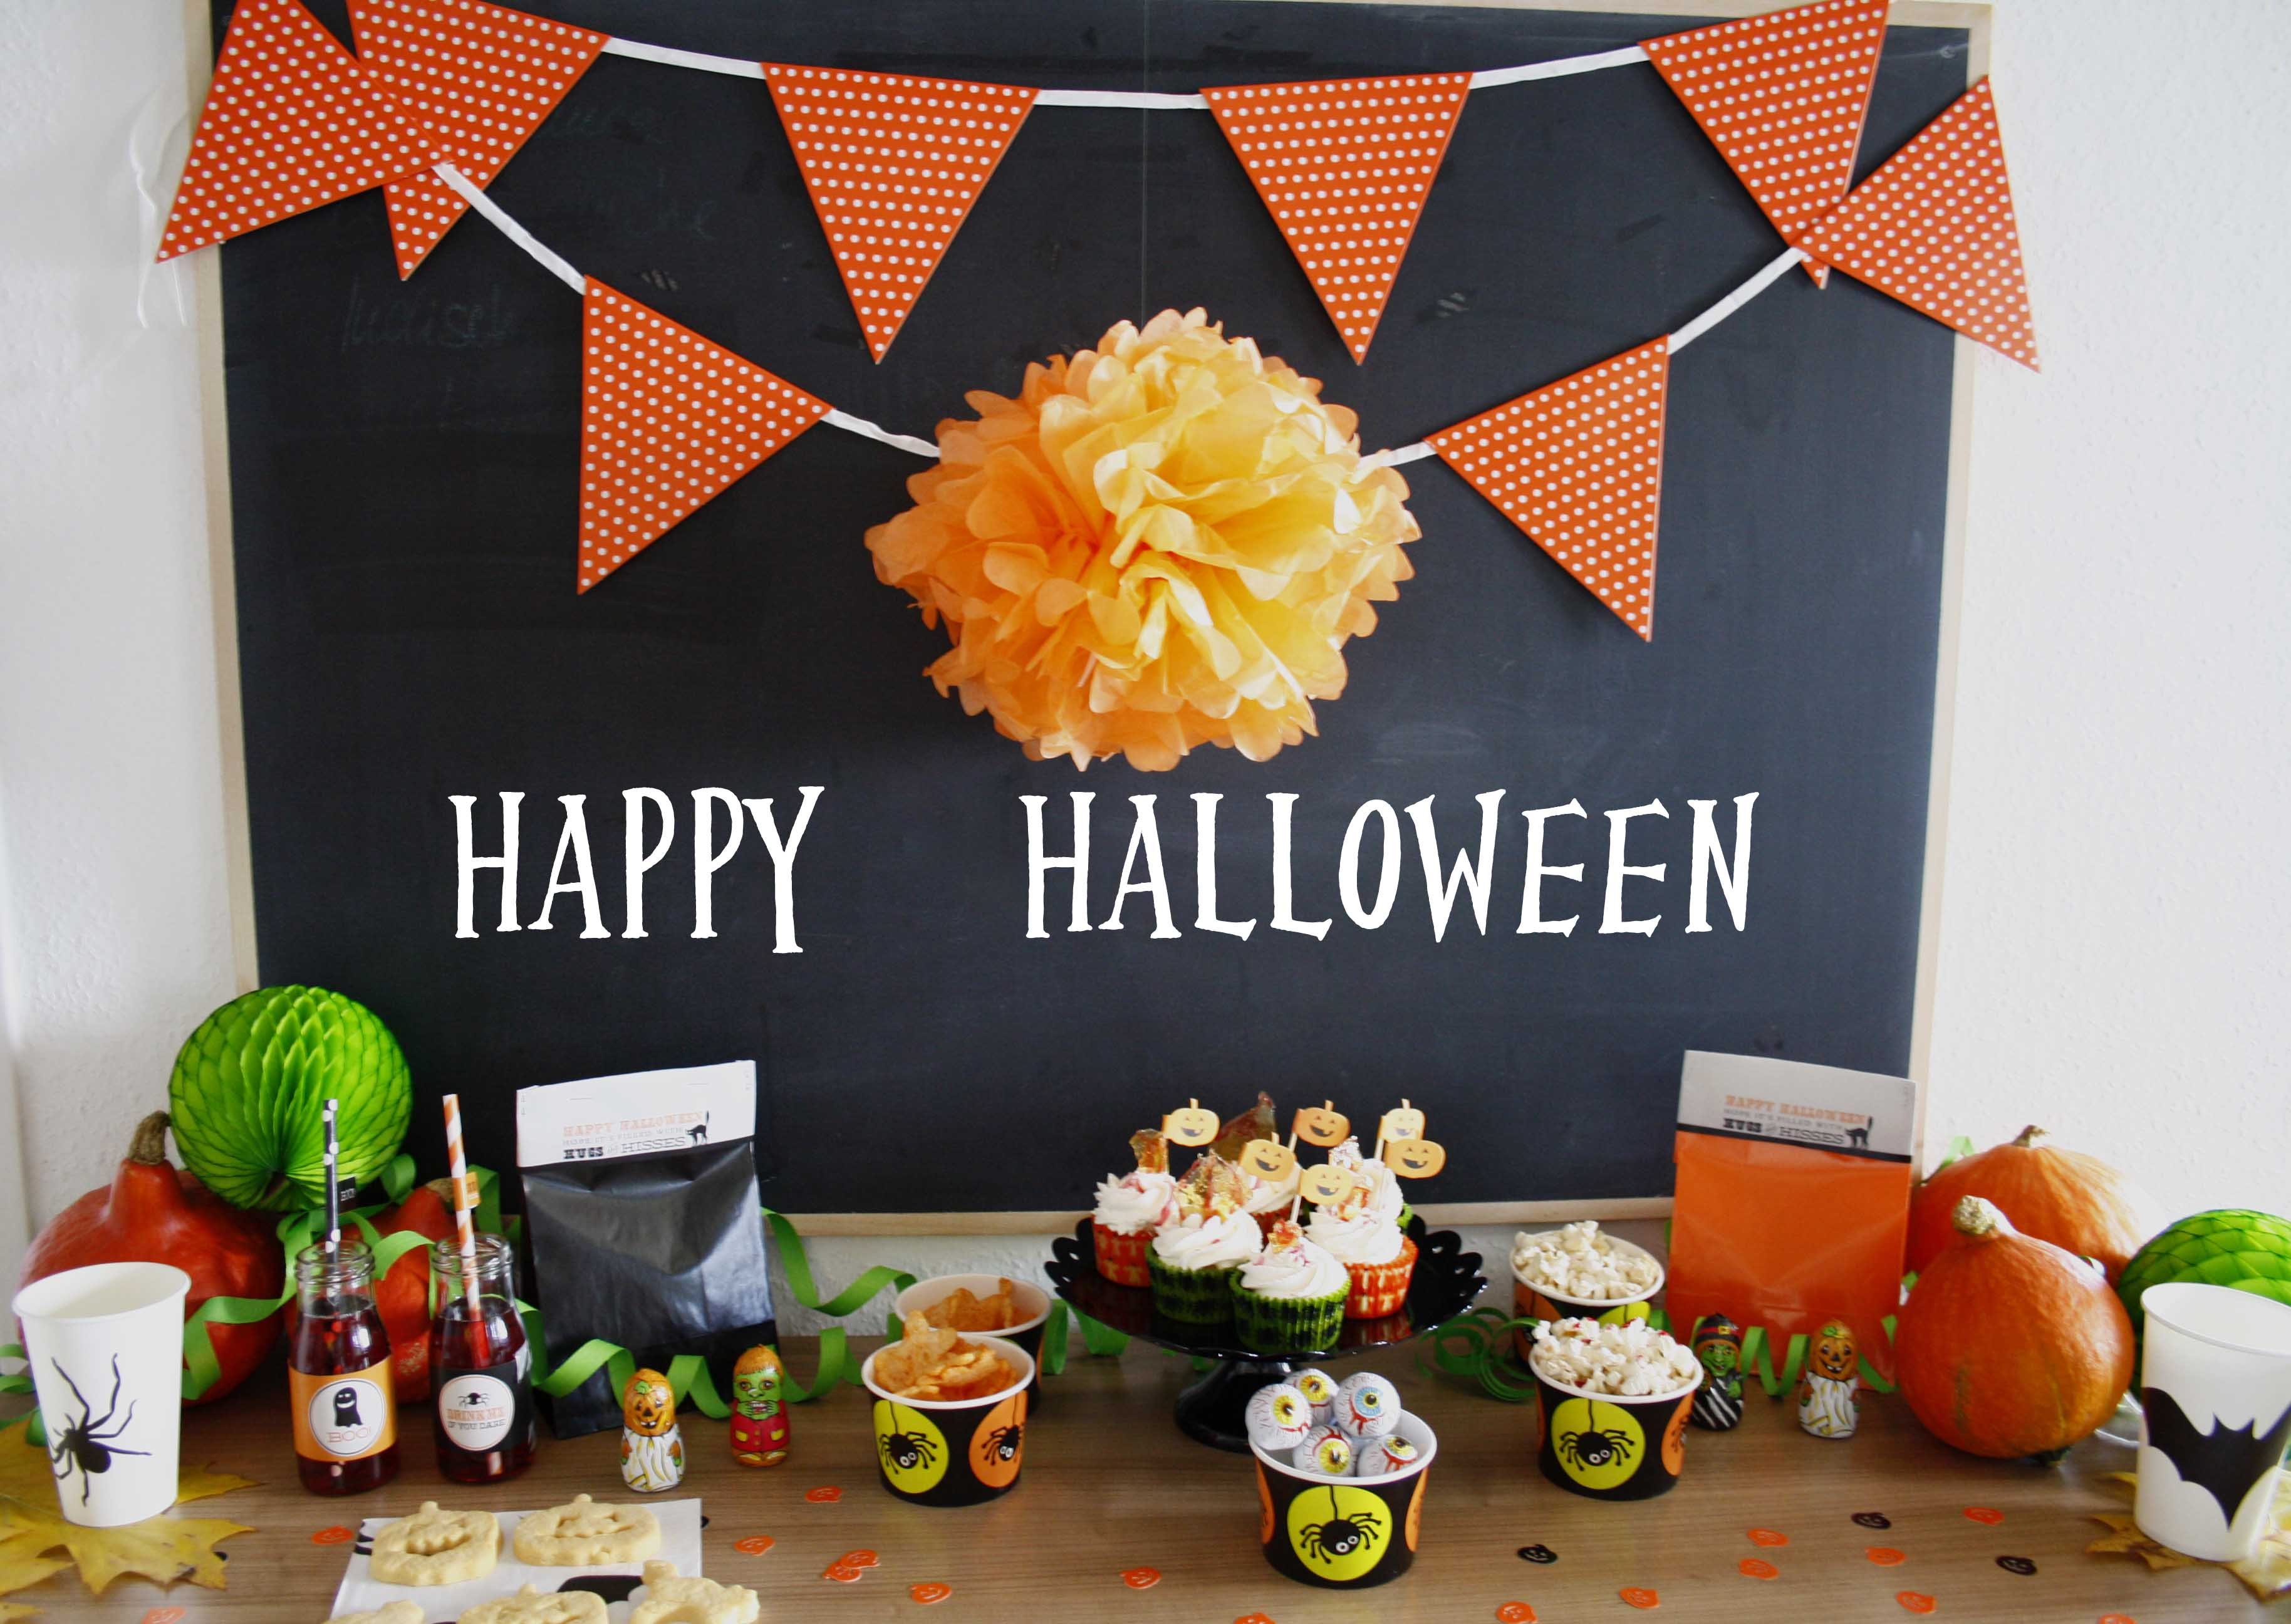 Halloween Party by http://babyrockmyday.com/halloweenparty/